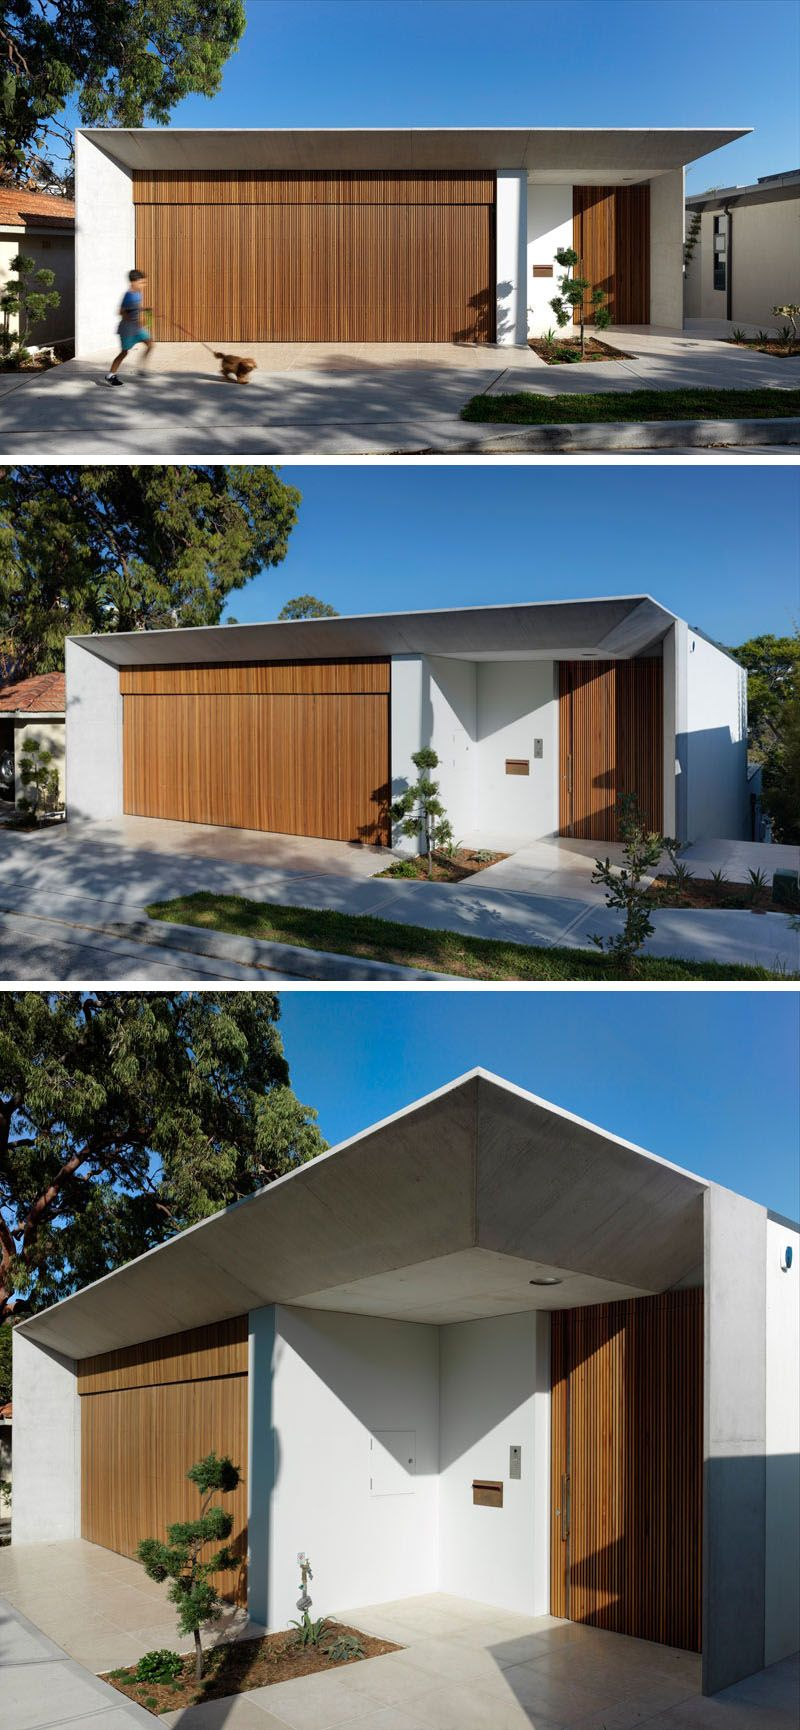 From The Street This Modern House Has A Wood Garage That Matches The Front Door The Front Door Has Been House Front Design Modern House Facades Facade House